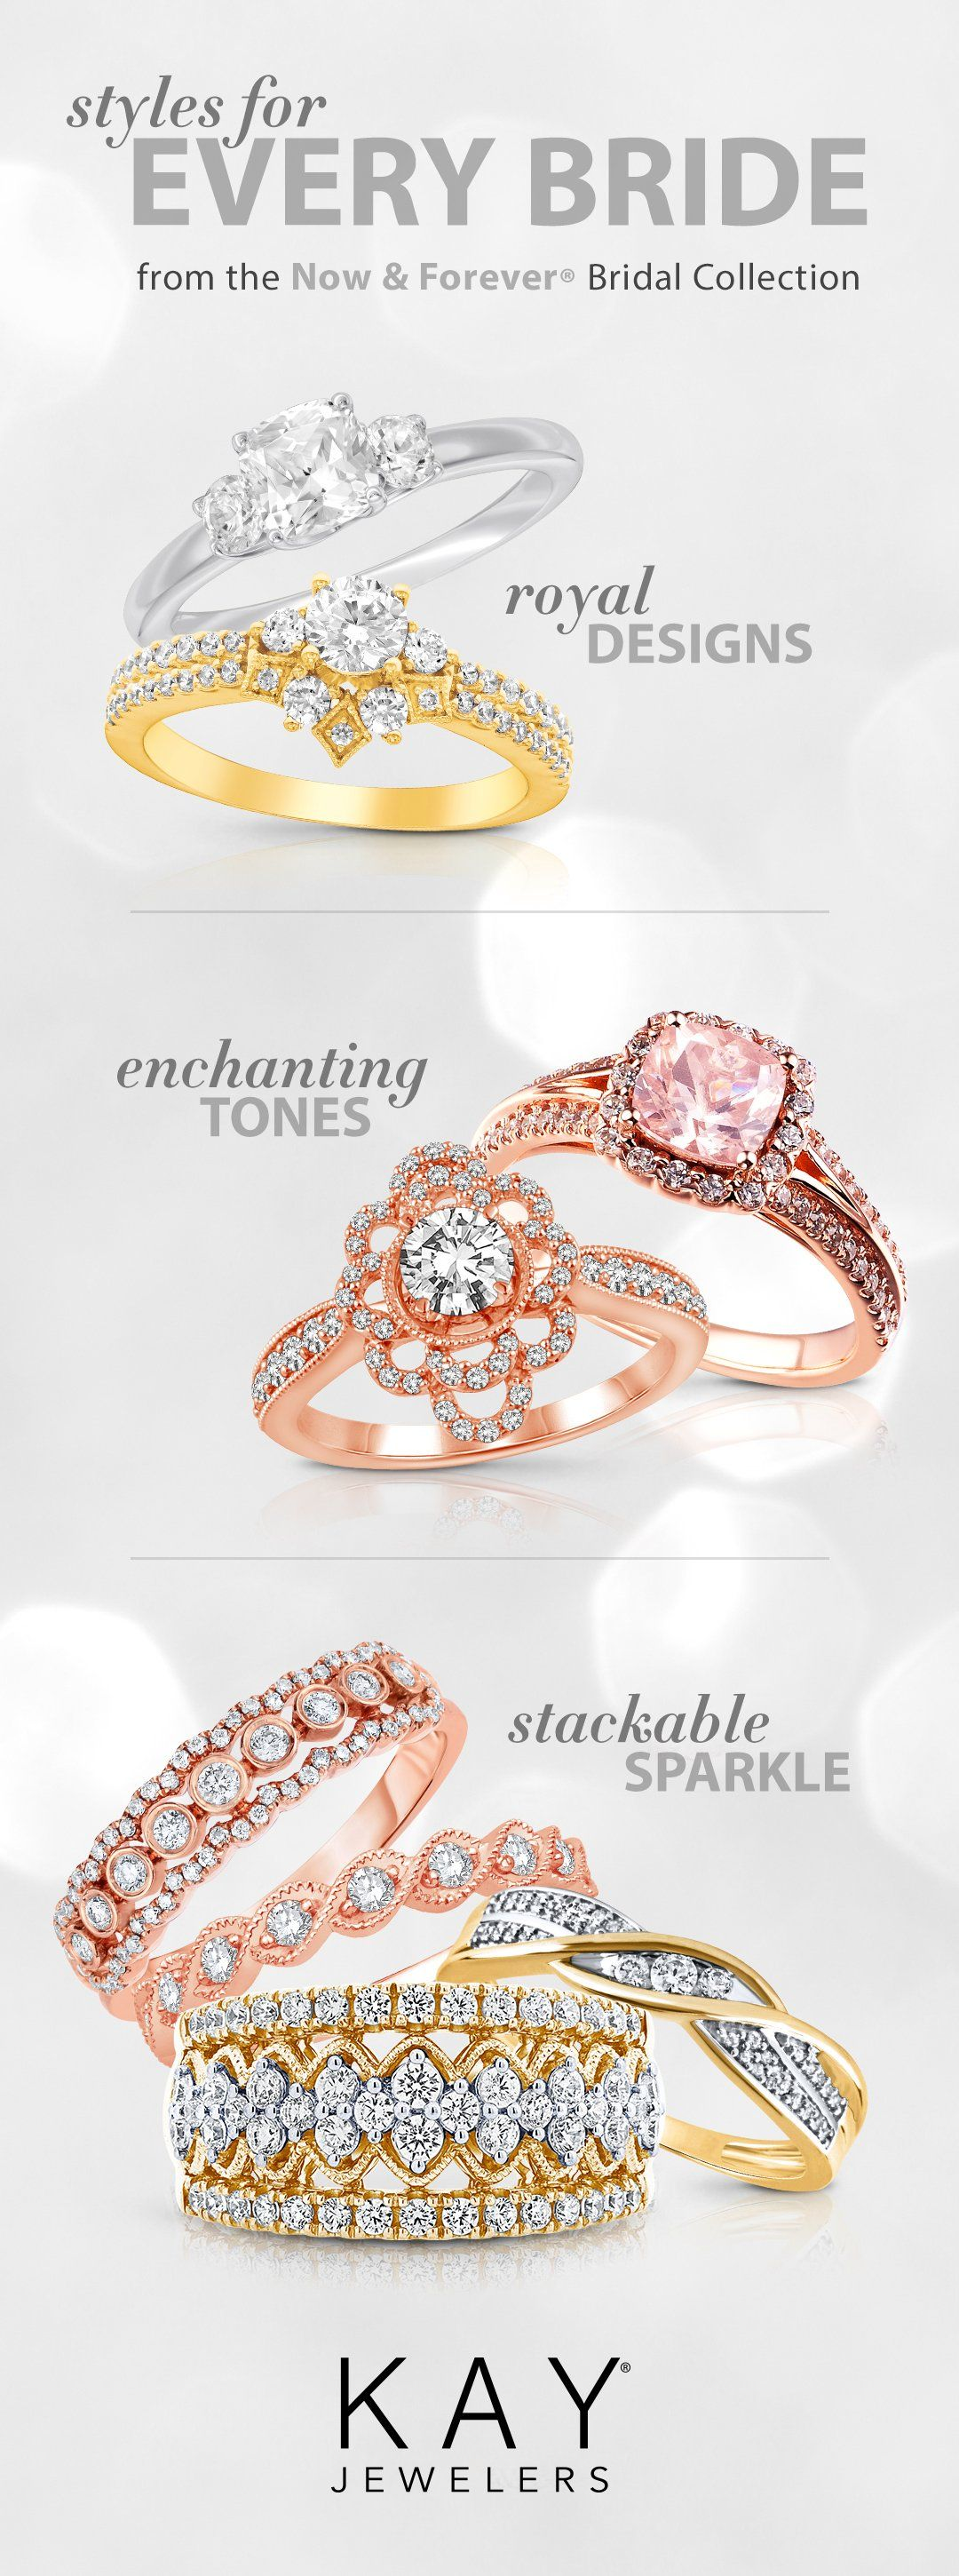 The Now Forever Collection Has Engagement Ring And Wedding Ring Styles For Every Bride Wedding Rings Fashion Rings Wedding Rings Vintage